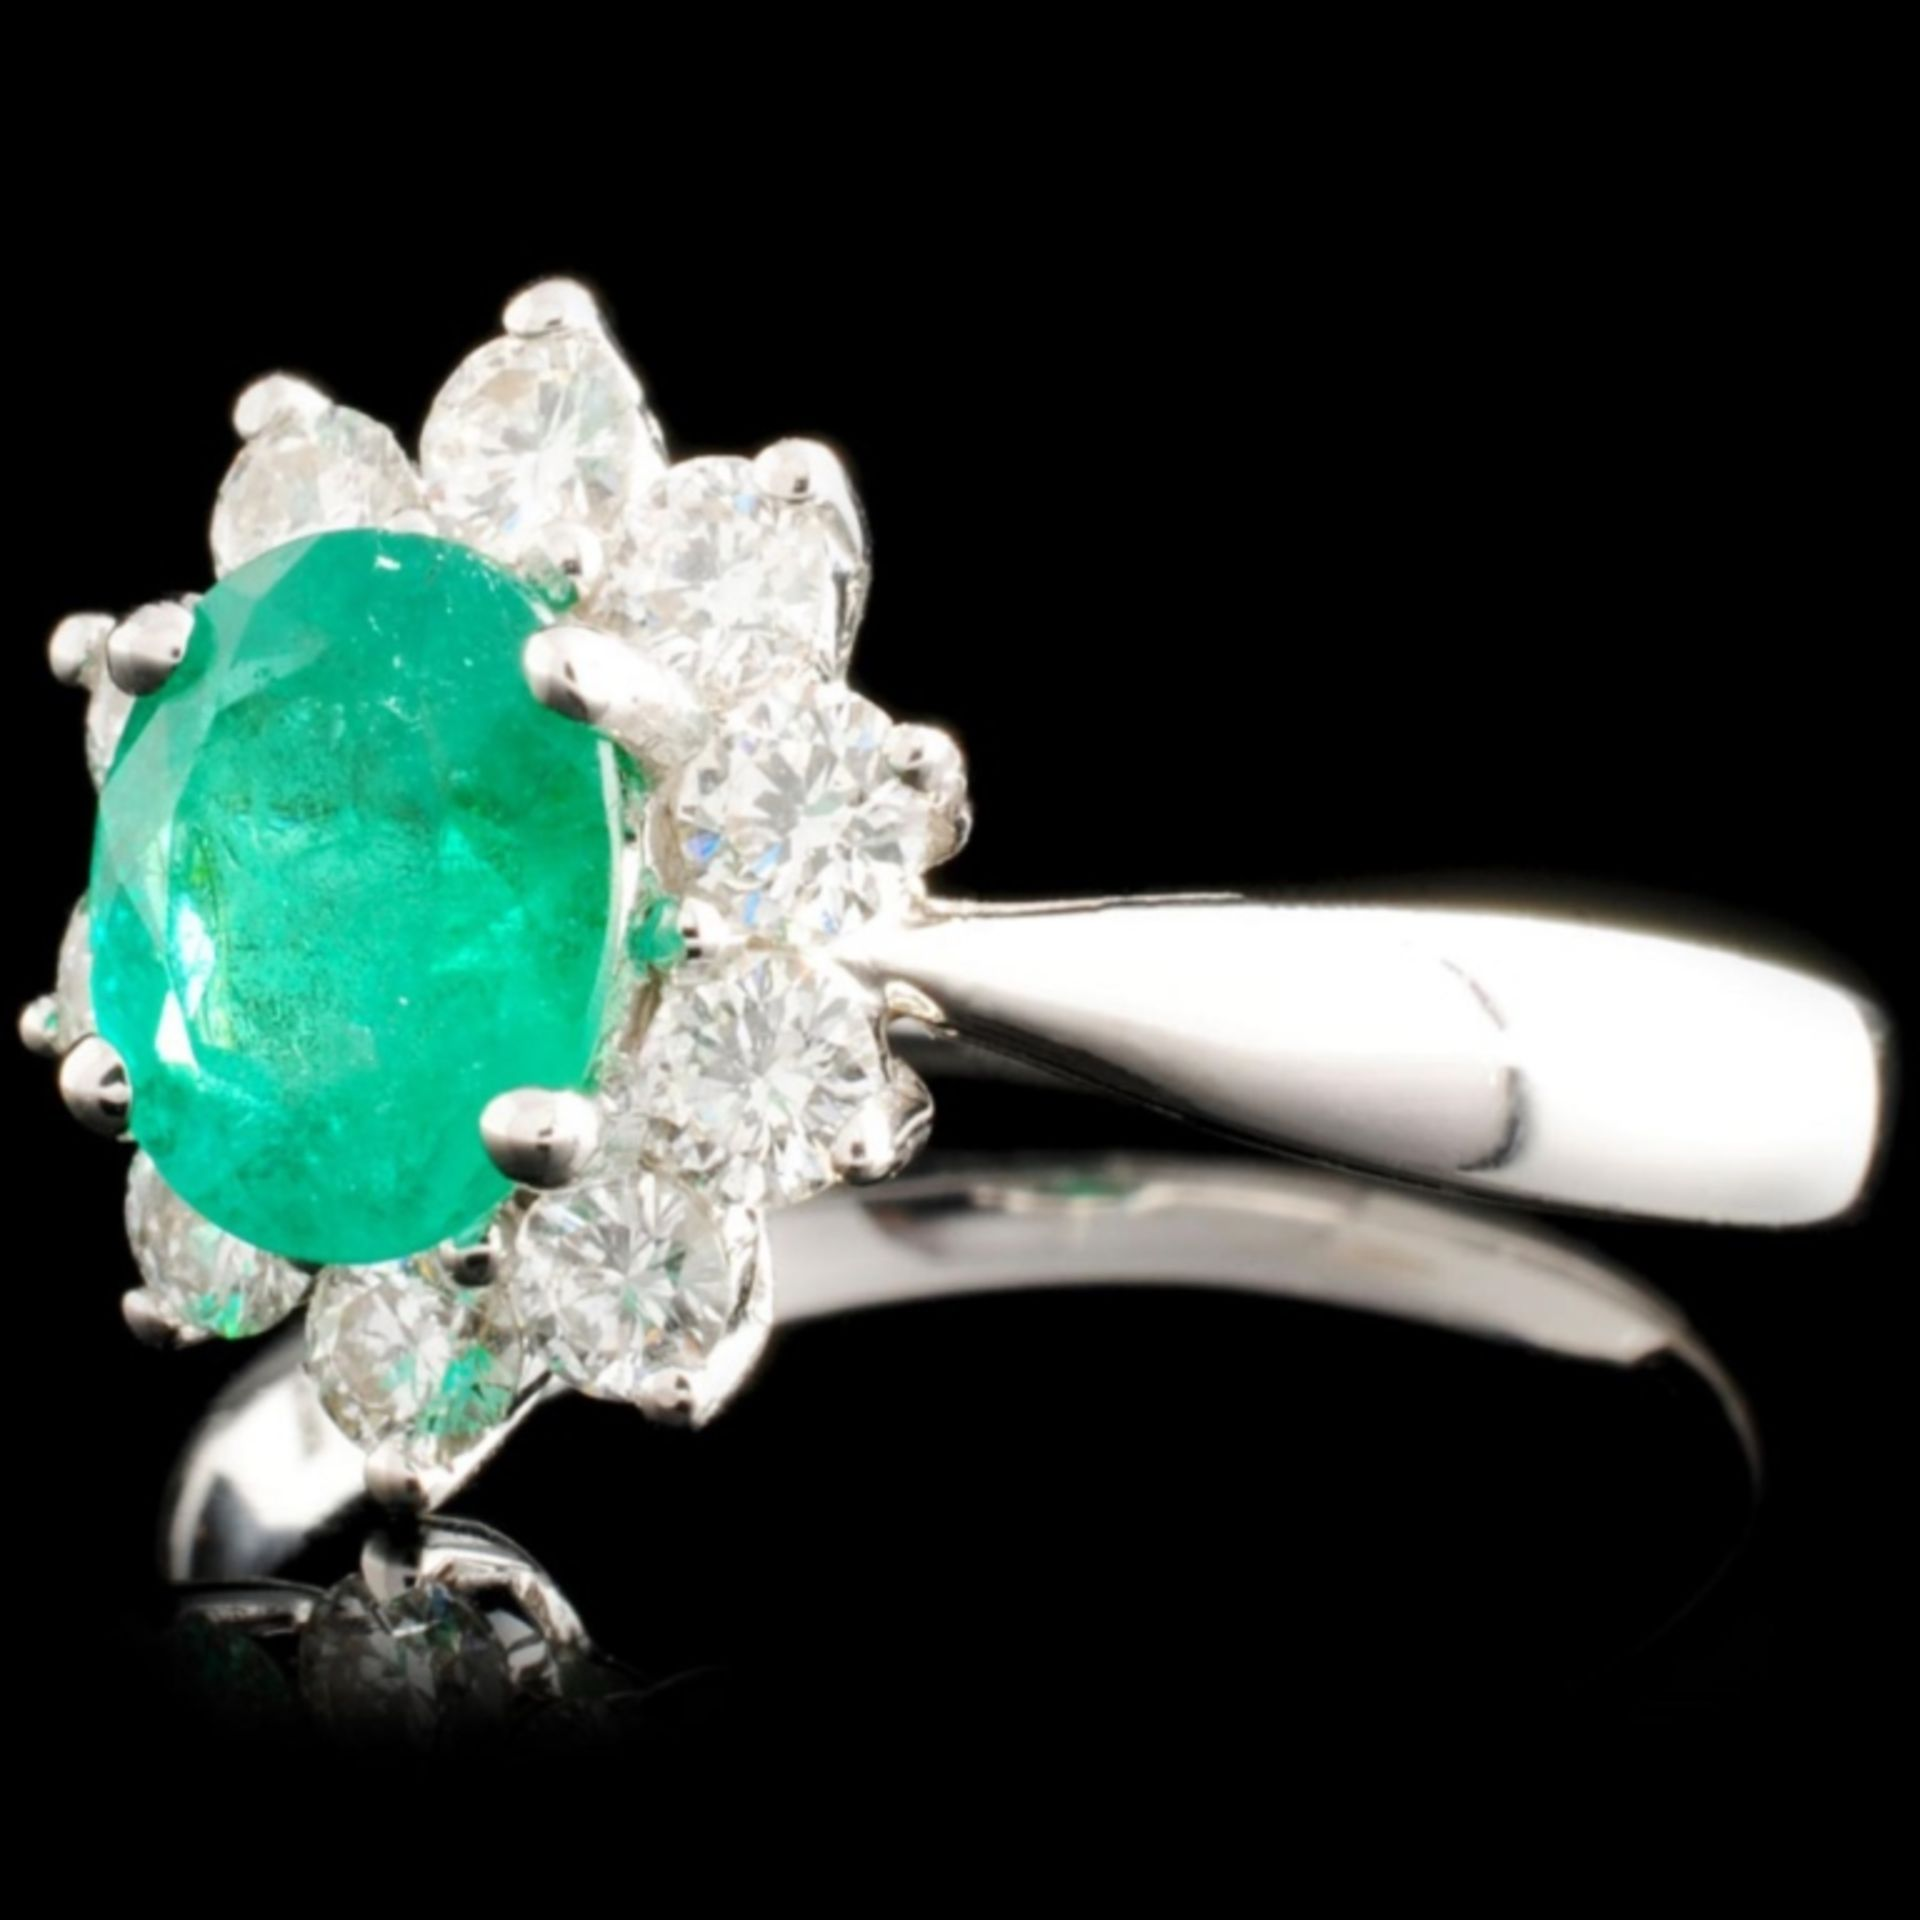 18K Gold 1.01ct Emerald & 0.57ctw Diamond Ring - Image 2 of 5